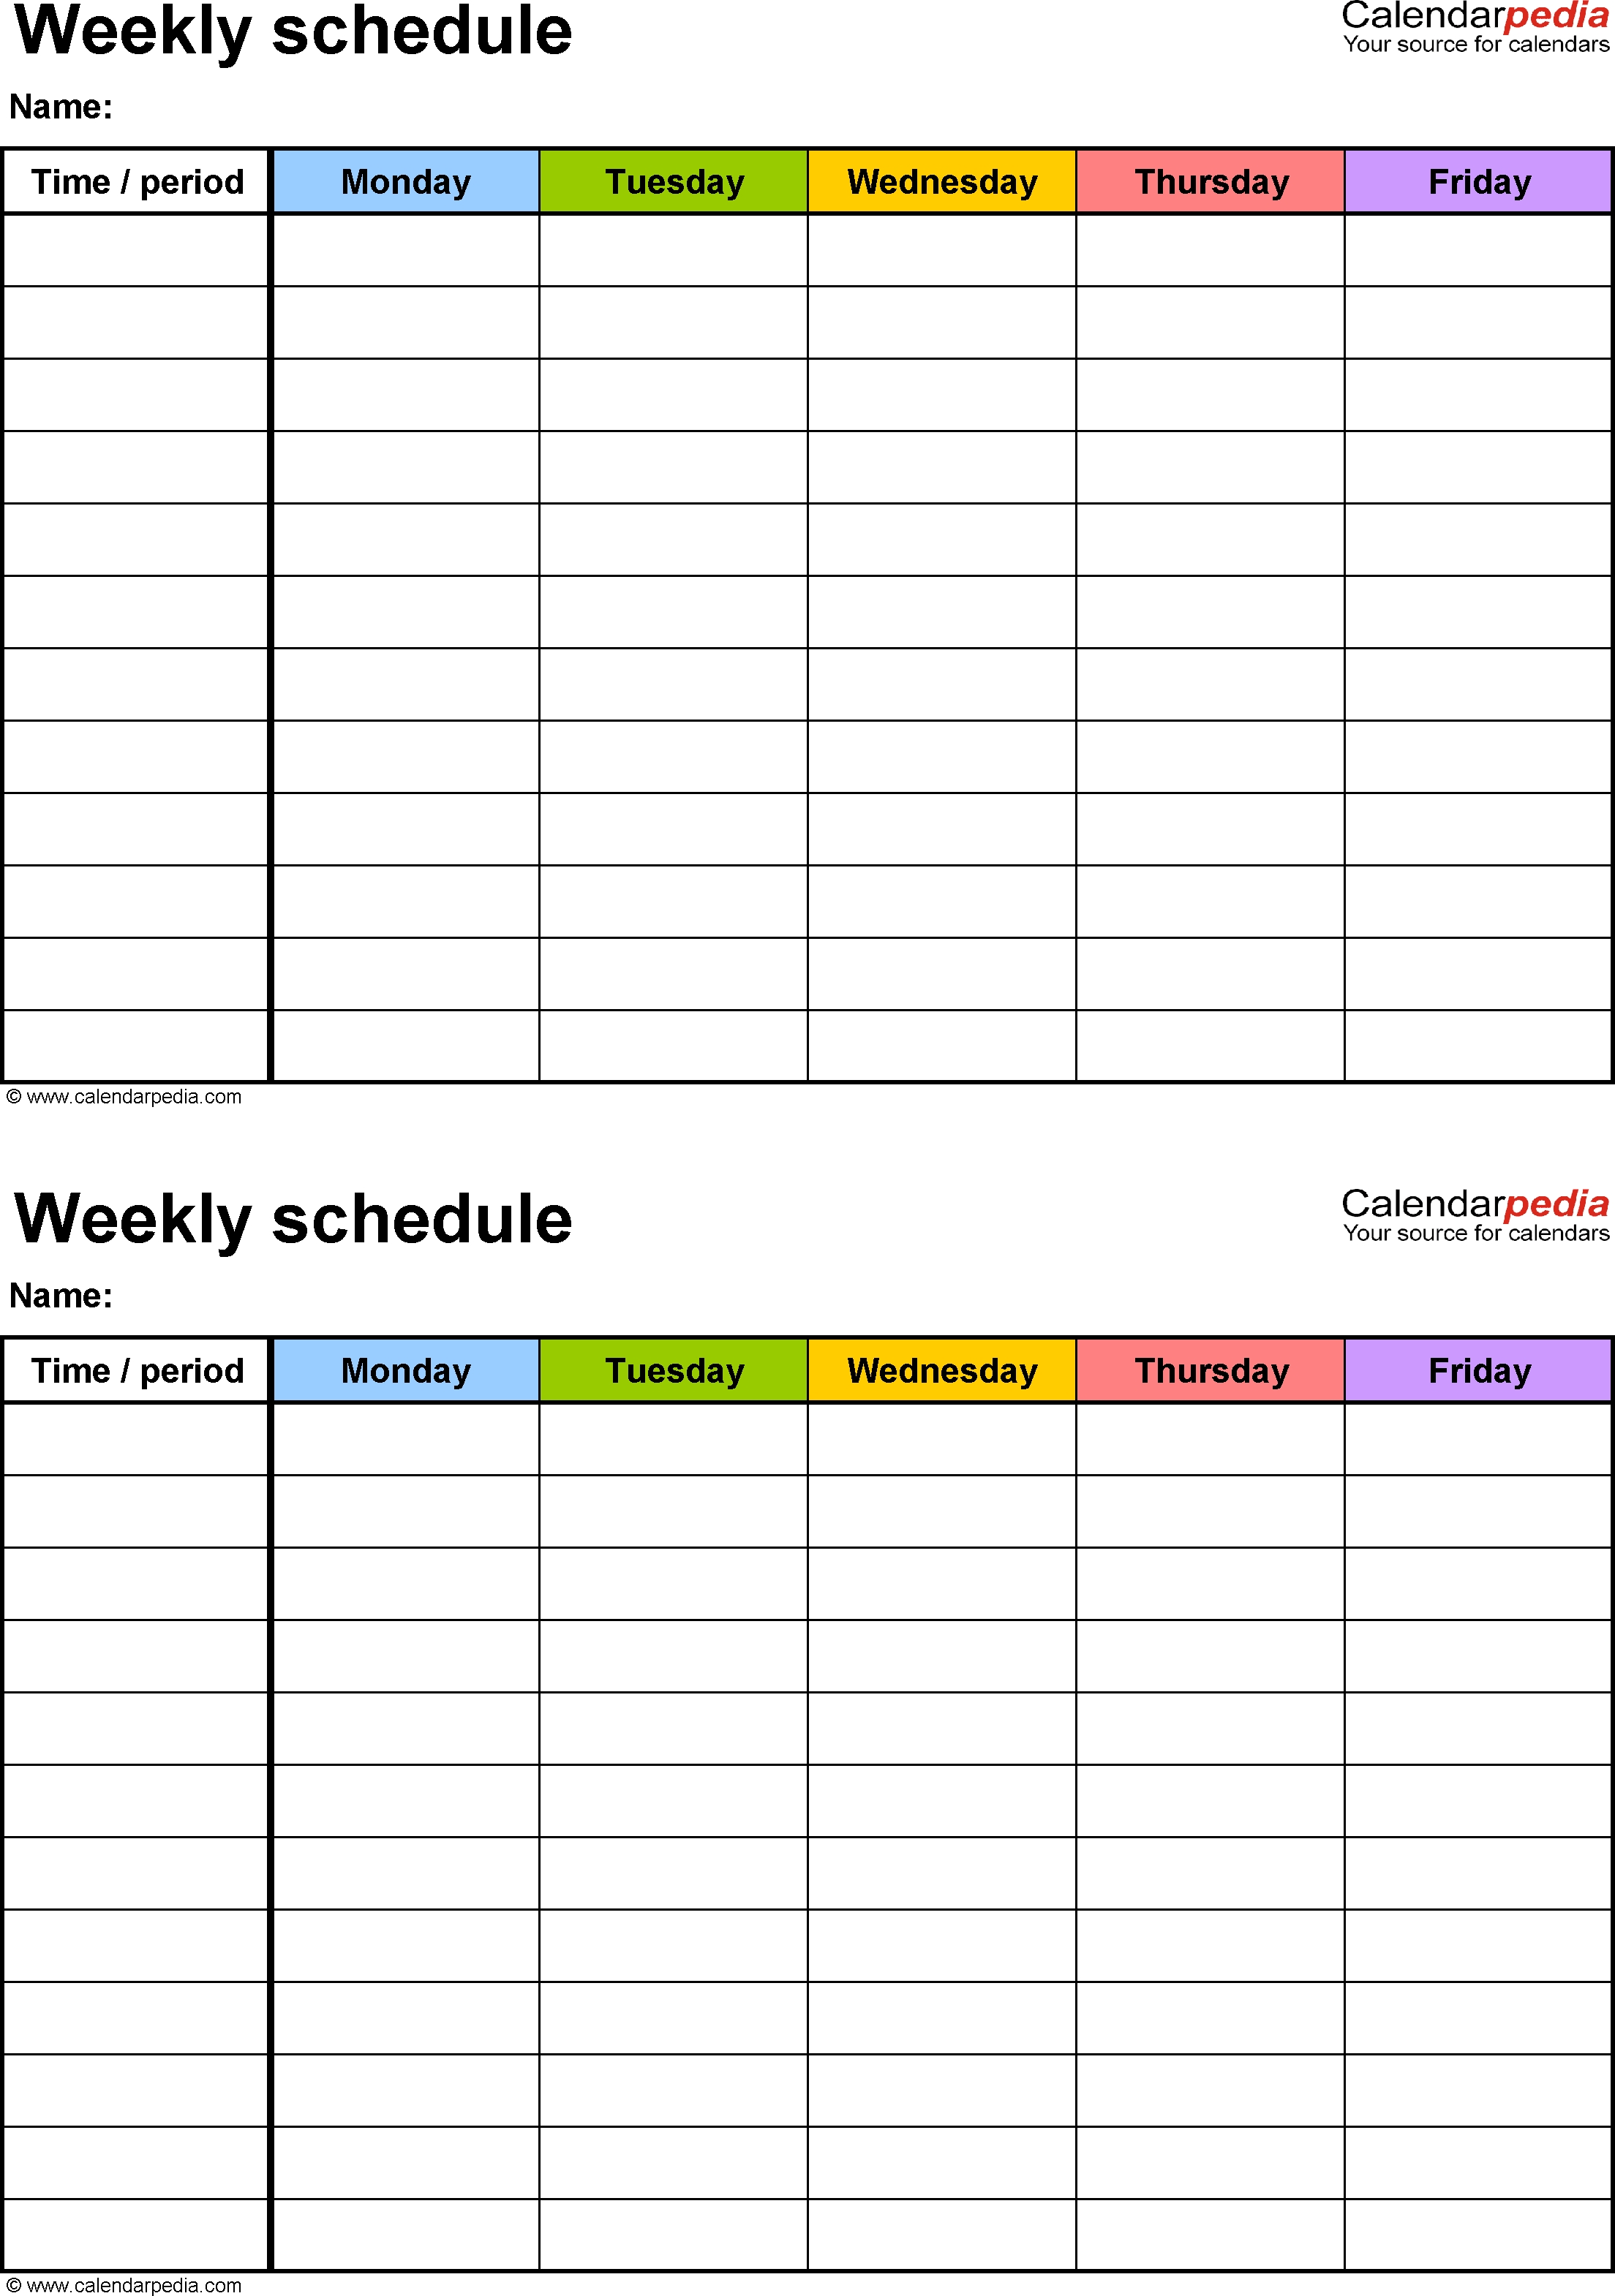 Weekly Schedule Template For Excel Version 3: 2 Schedules On One regarding Monday Through Friday Schedule Printable